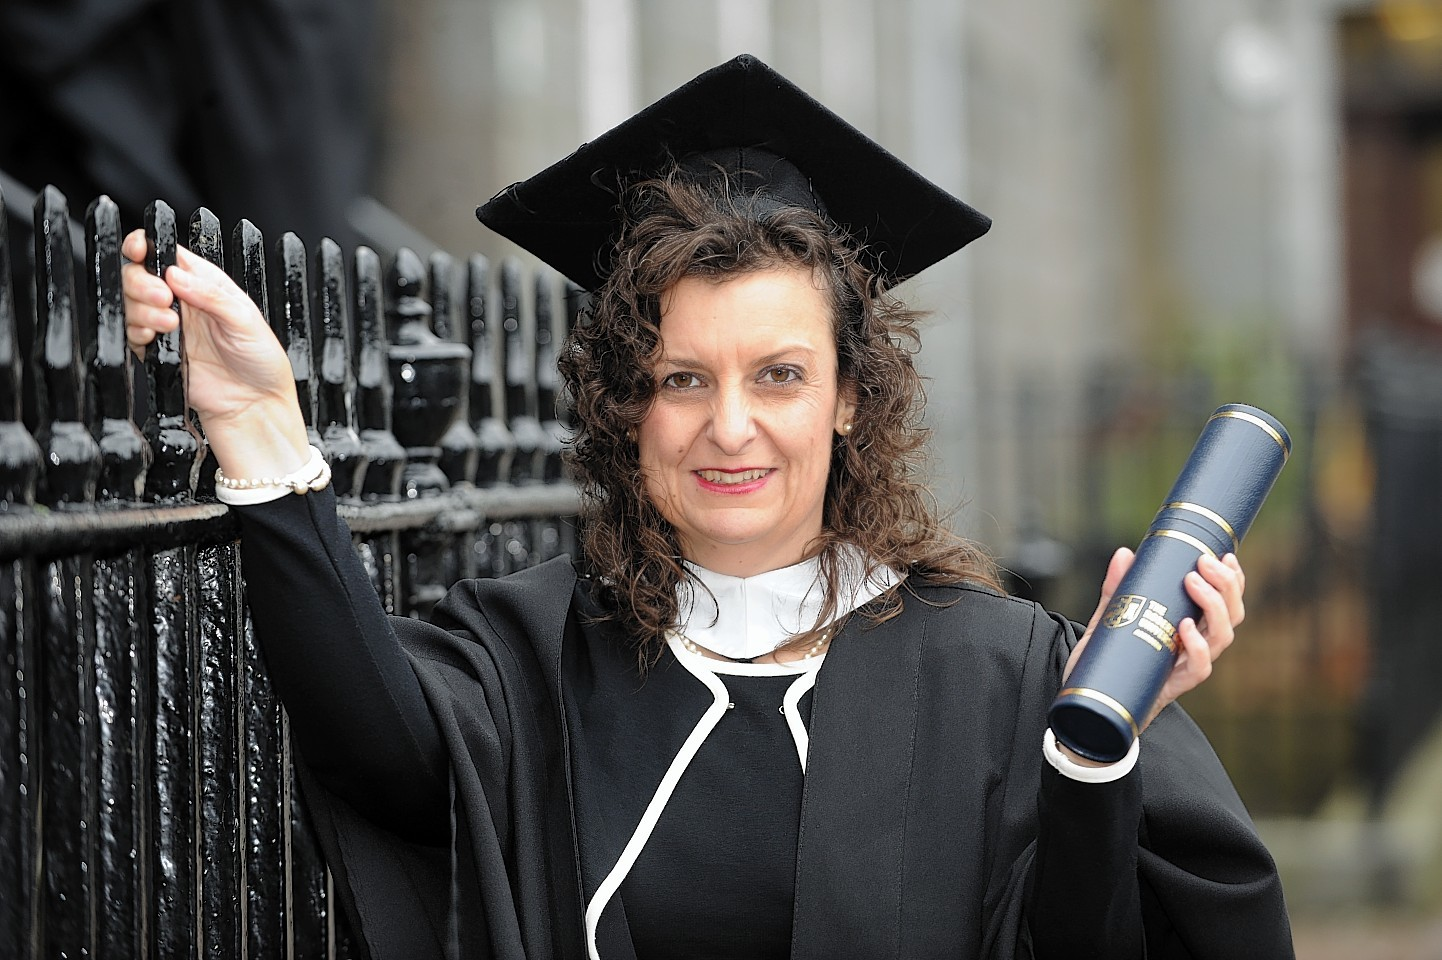 Patricia Connolly at her graduation in 2008.